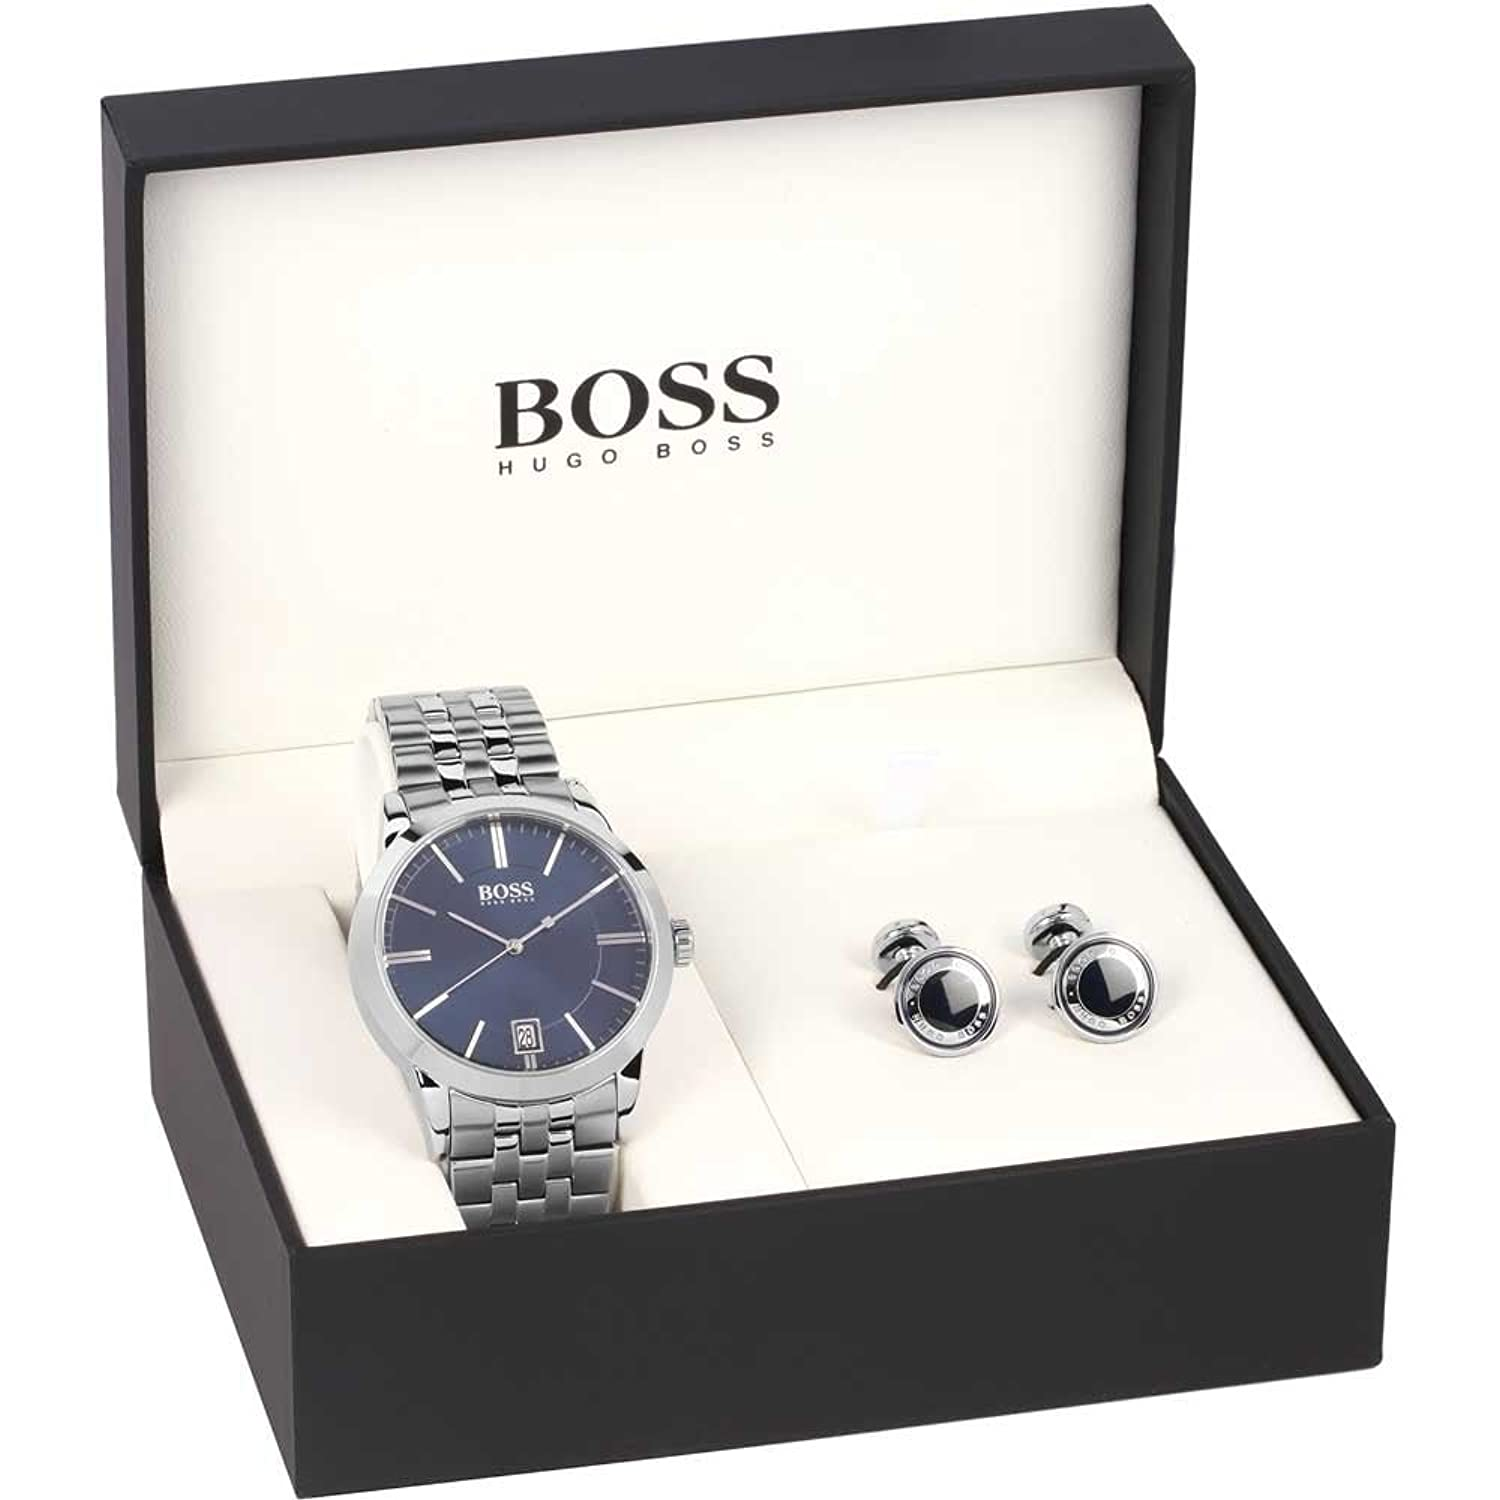 Mens Hugo Boss Cufflink Gift Set Watch 1570045: Amazon.co.uk: Watches